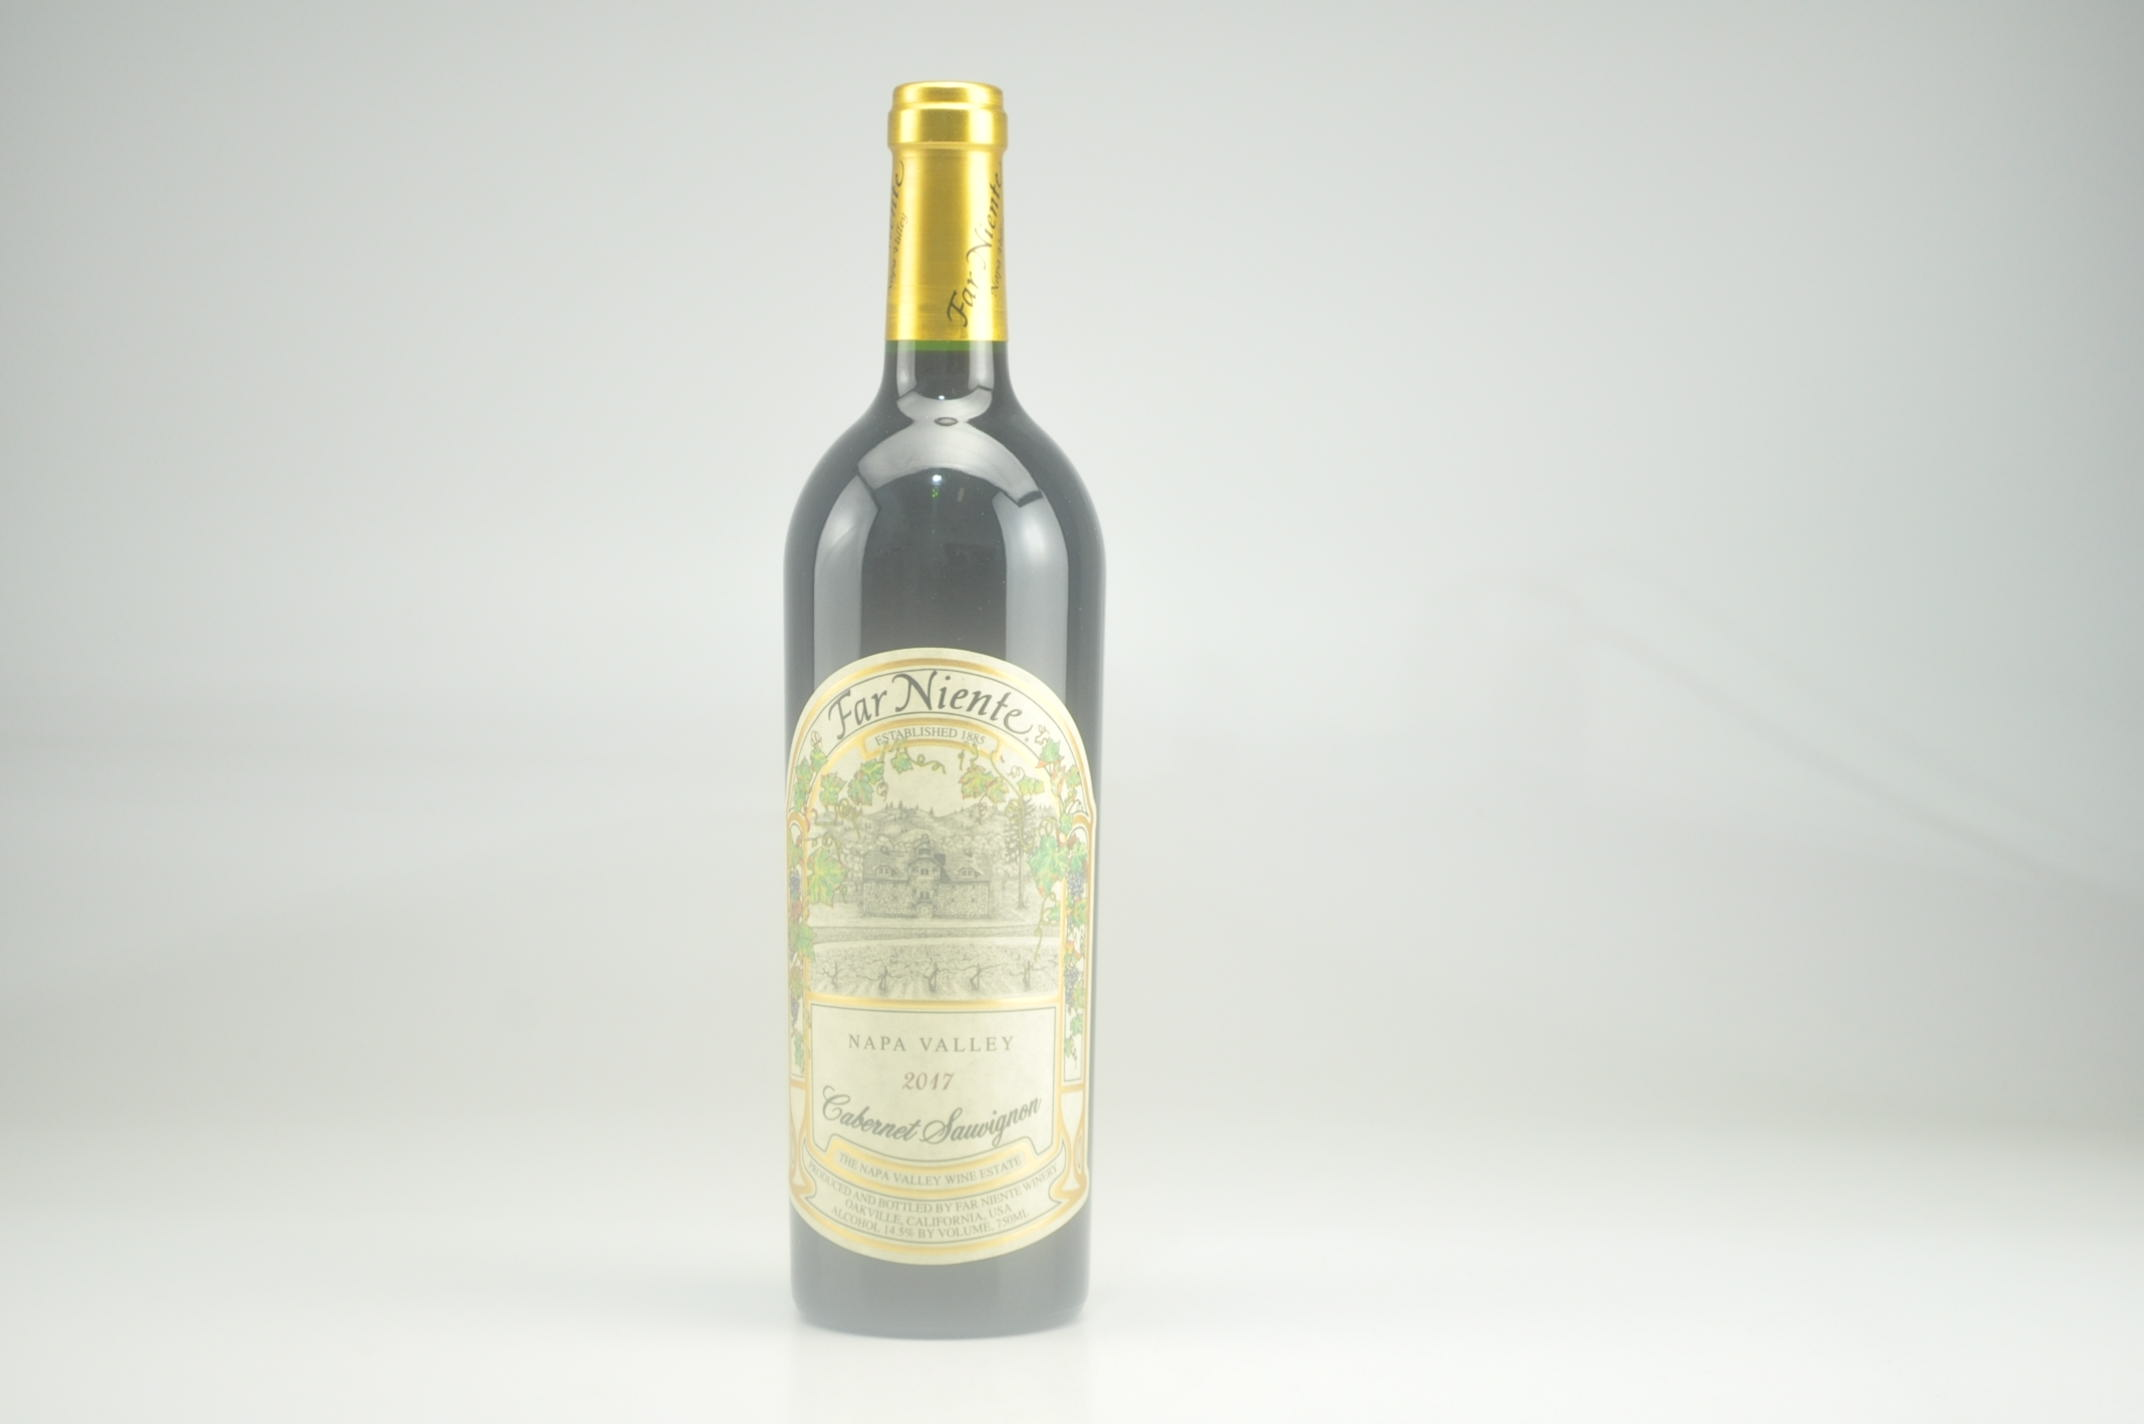 2017 Far Niente Cabernet Sauvignon Other--94